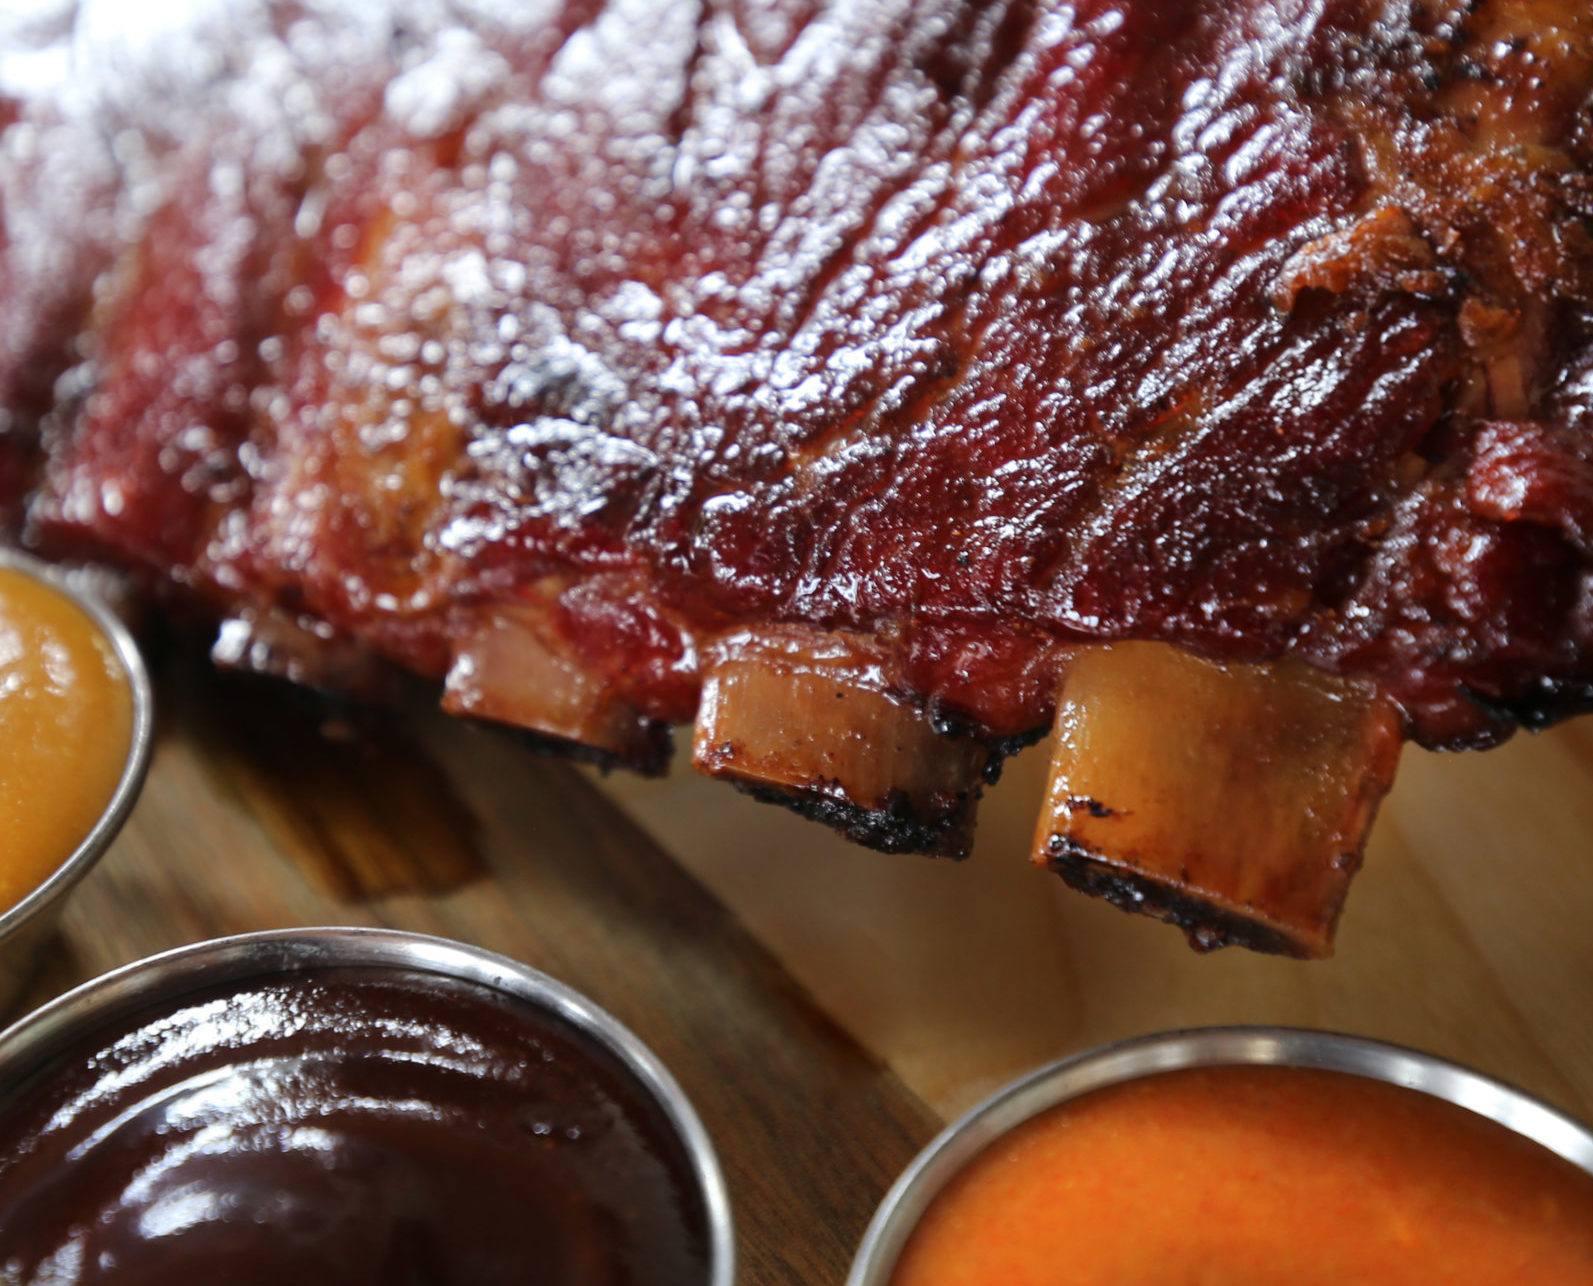 Slab of Ribs